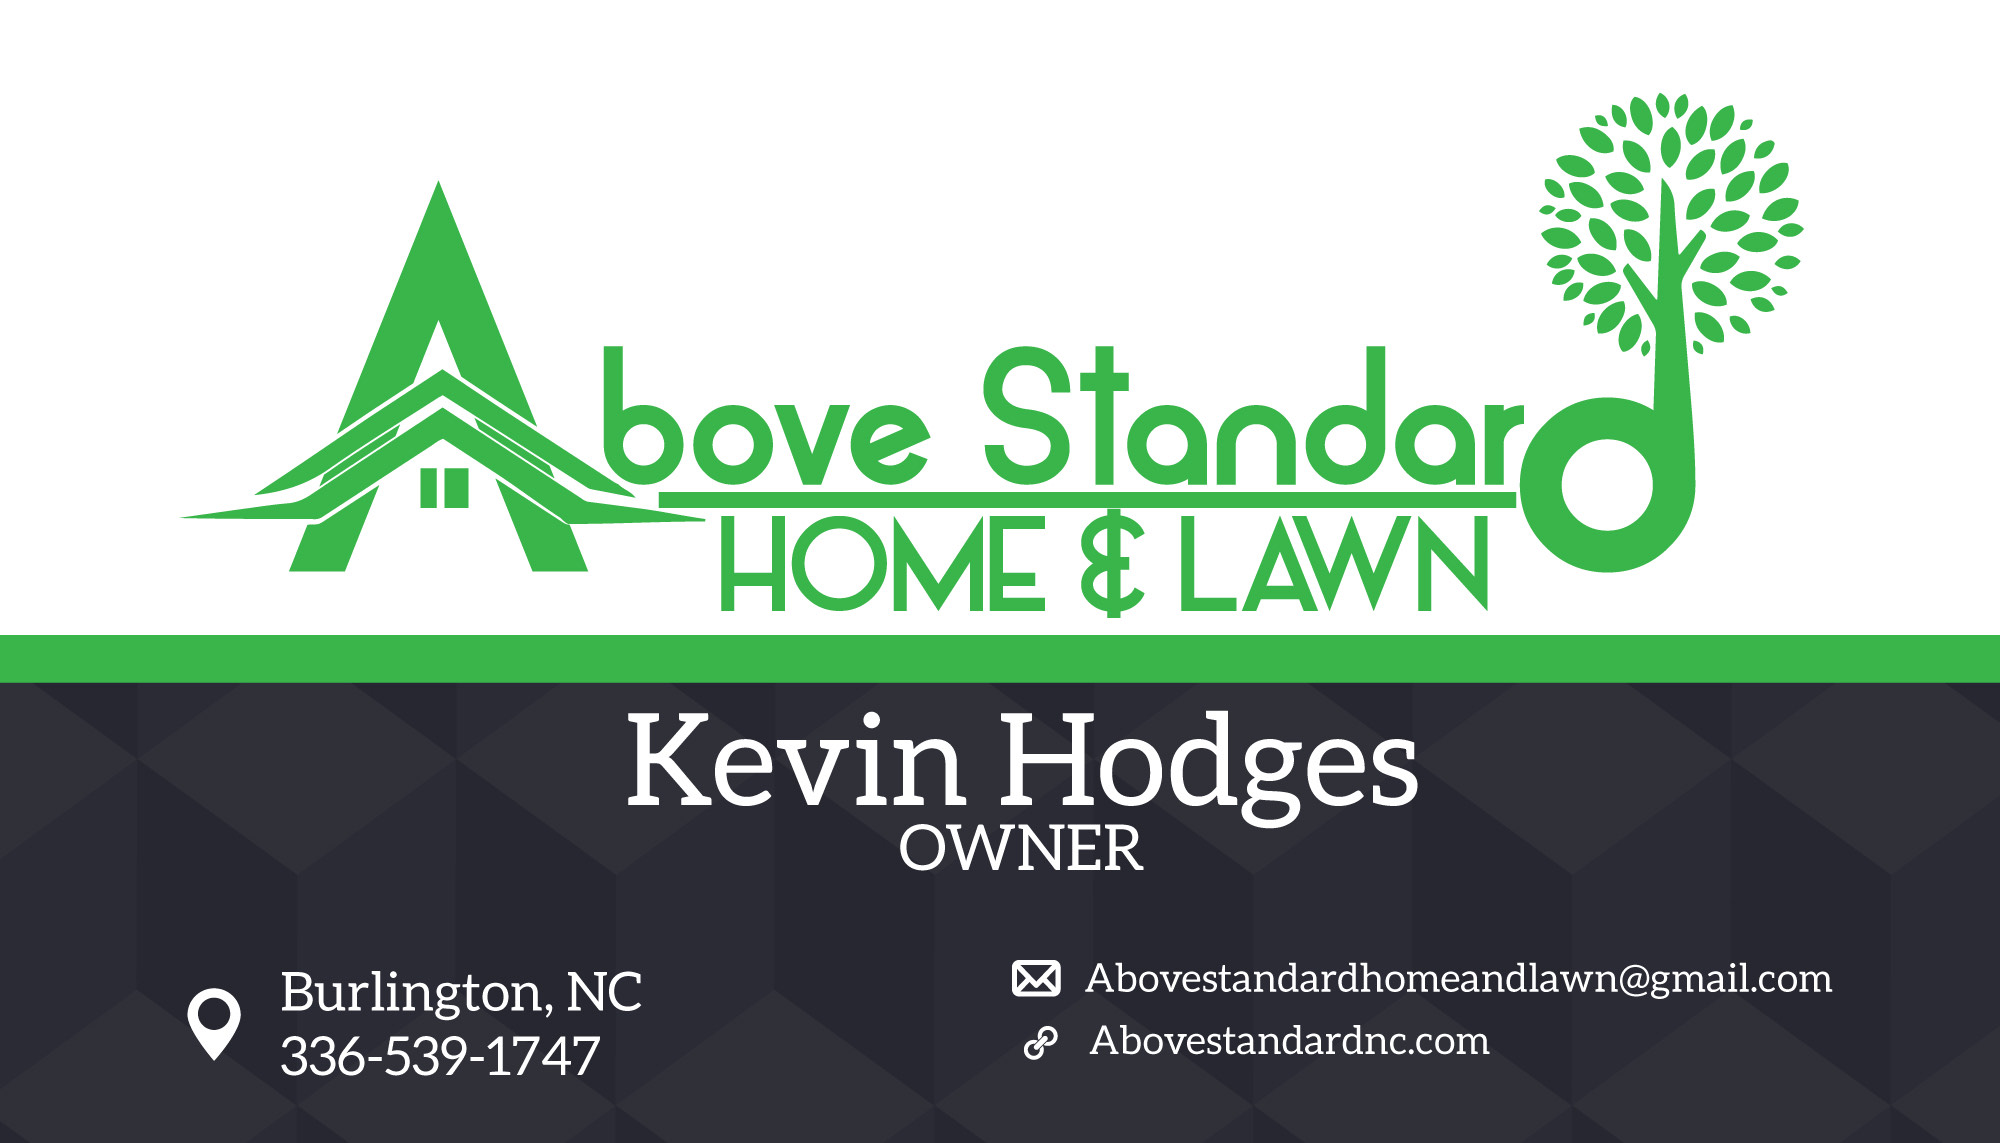 Specializing in residential, commercial repairs, renovations, and lawn care.